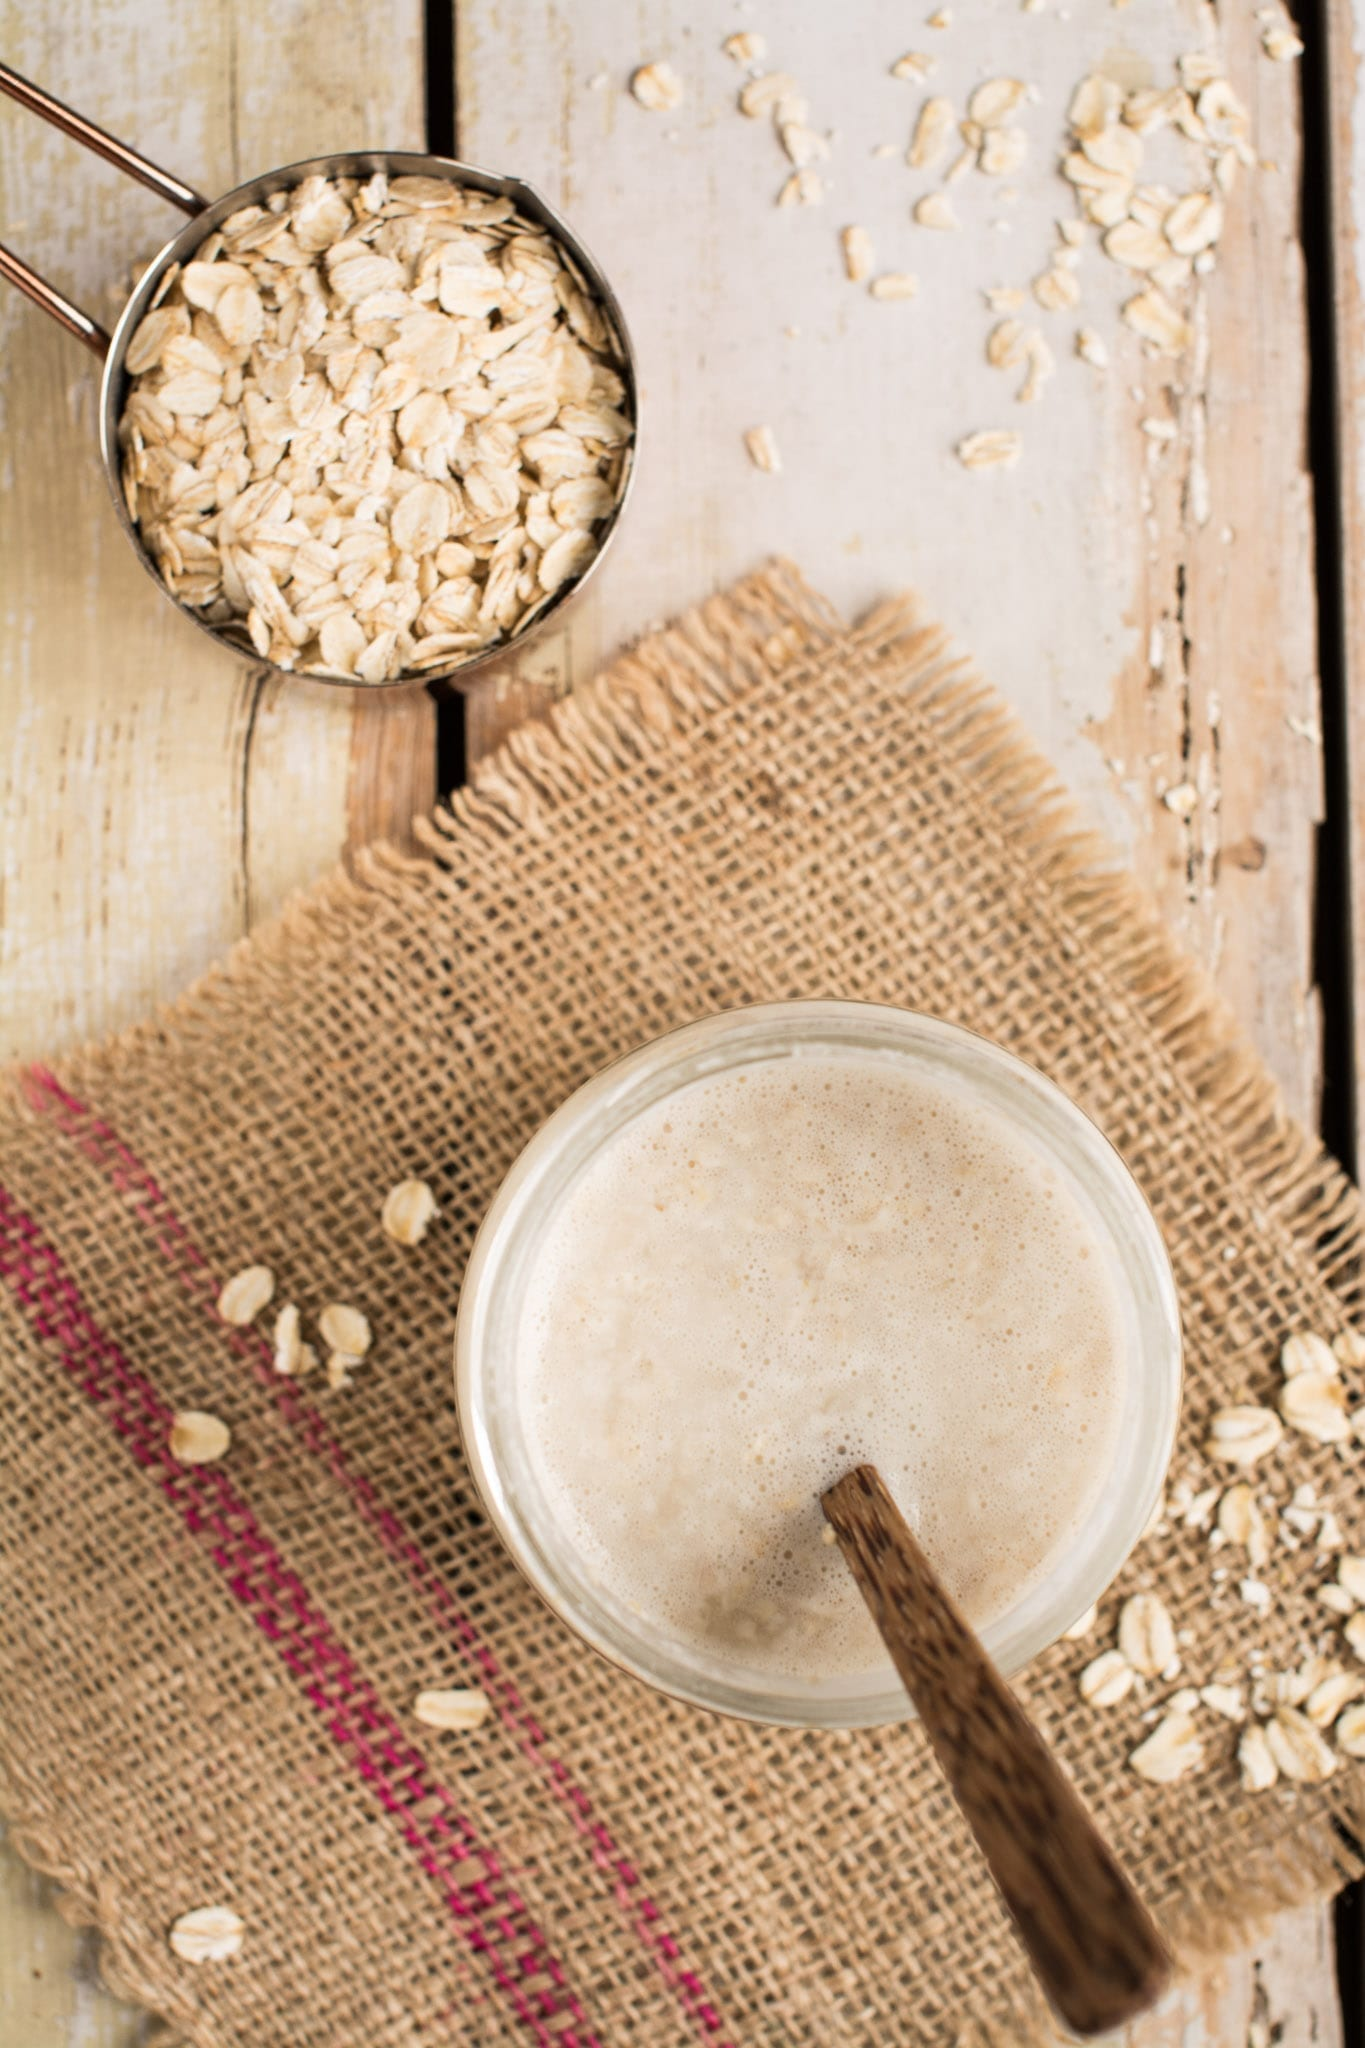 Gut-friendly homemade oat yoghurt for a healthy breakfast or snack.